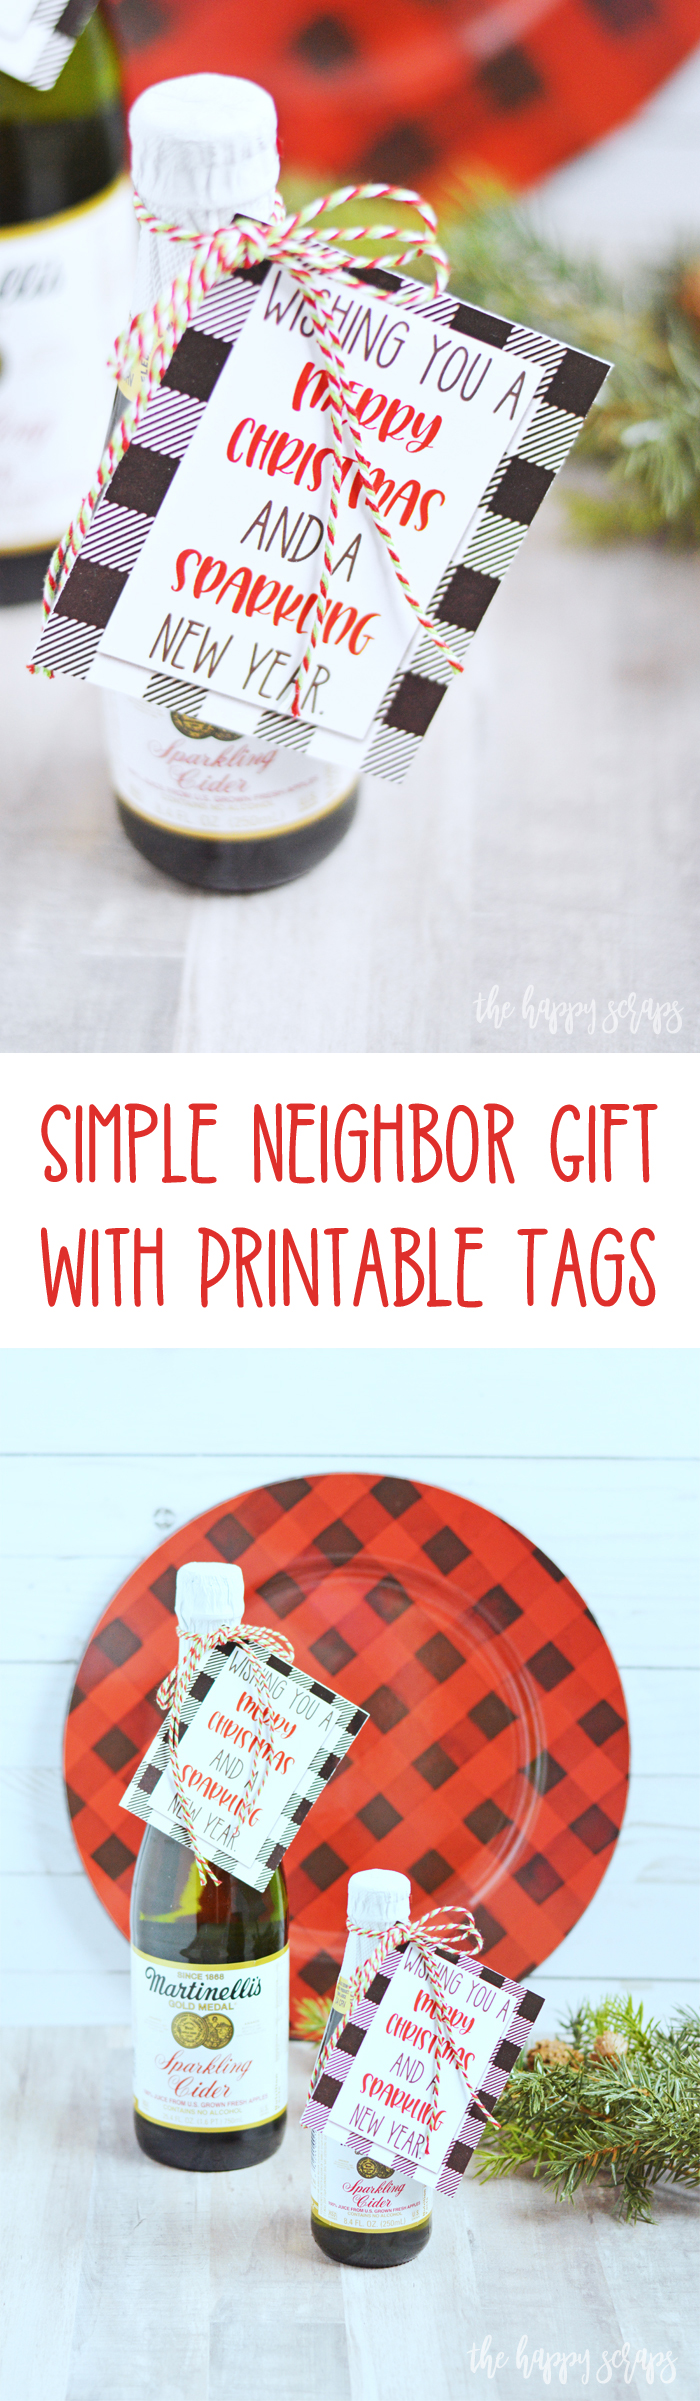 These Simple Neighbor Gift with Printable Tags are simple to put together + let your friends and neighbors know you're thinking of them this holiday season.